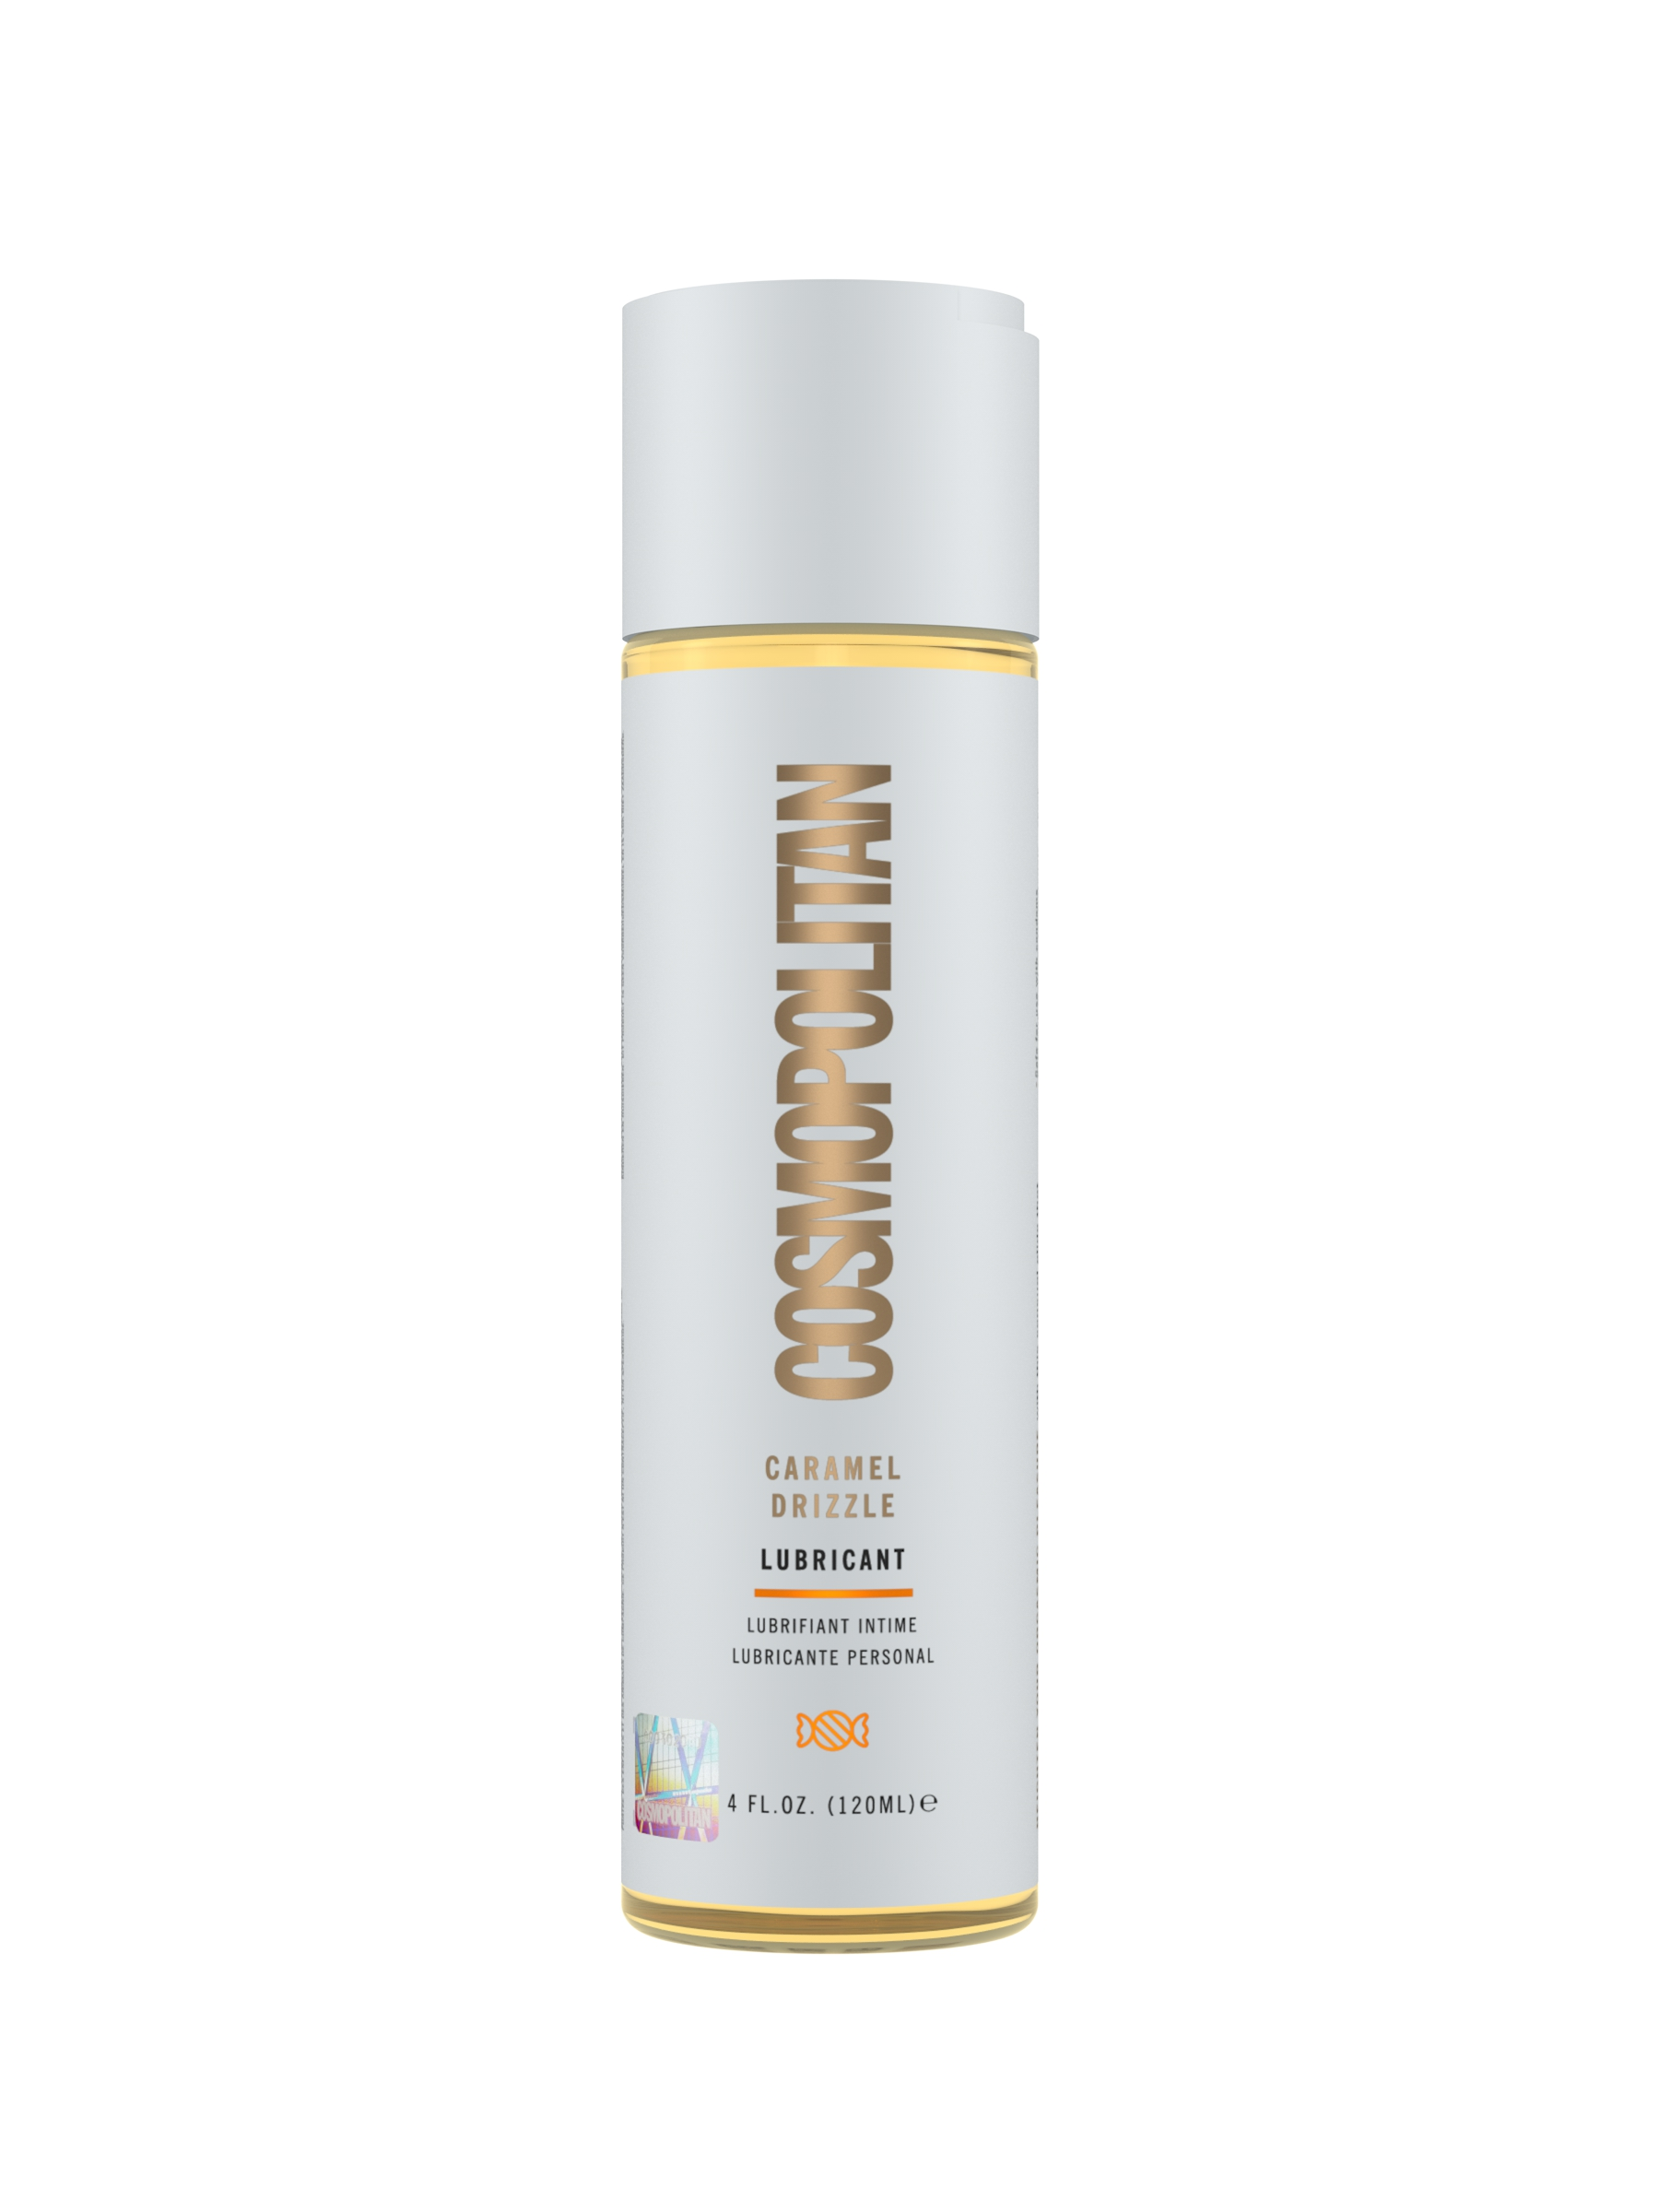 COSMO Caramel Drizzle Lubricant -